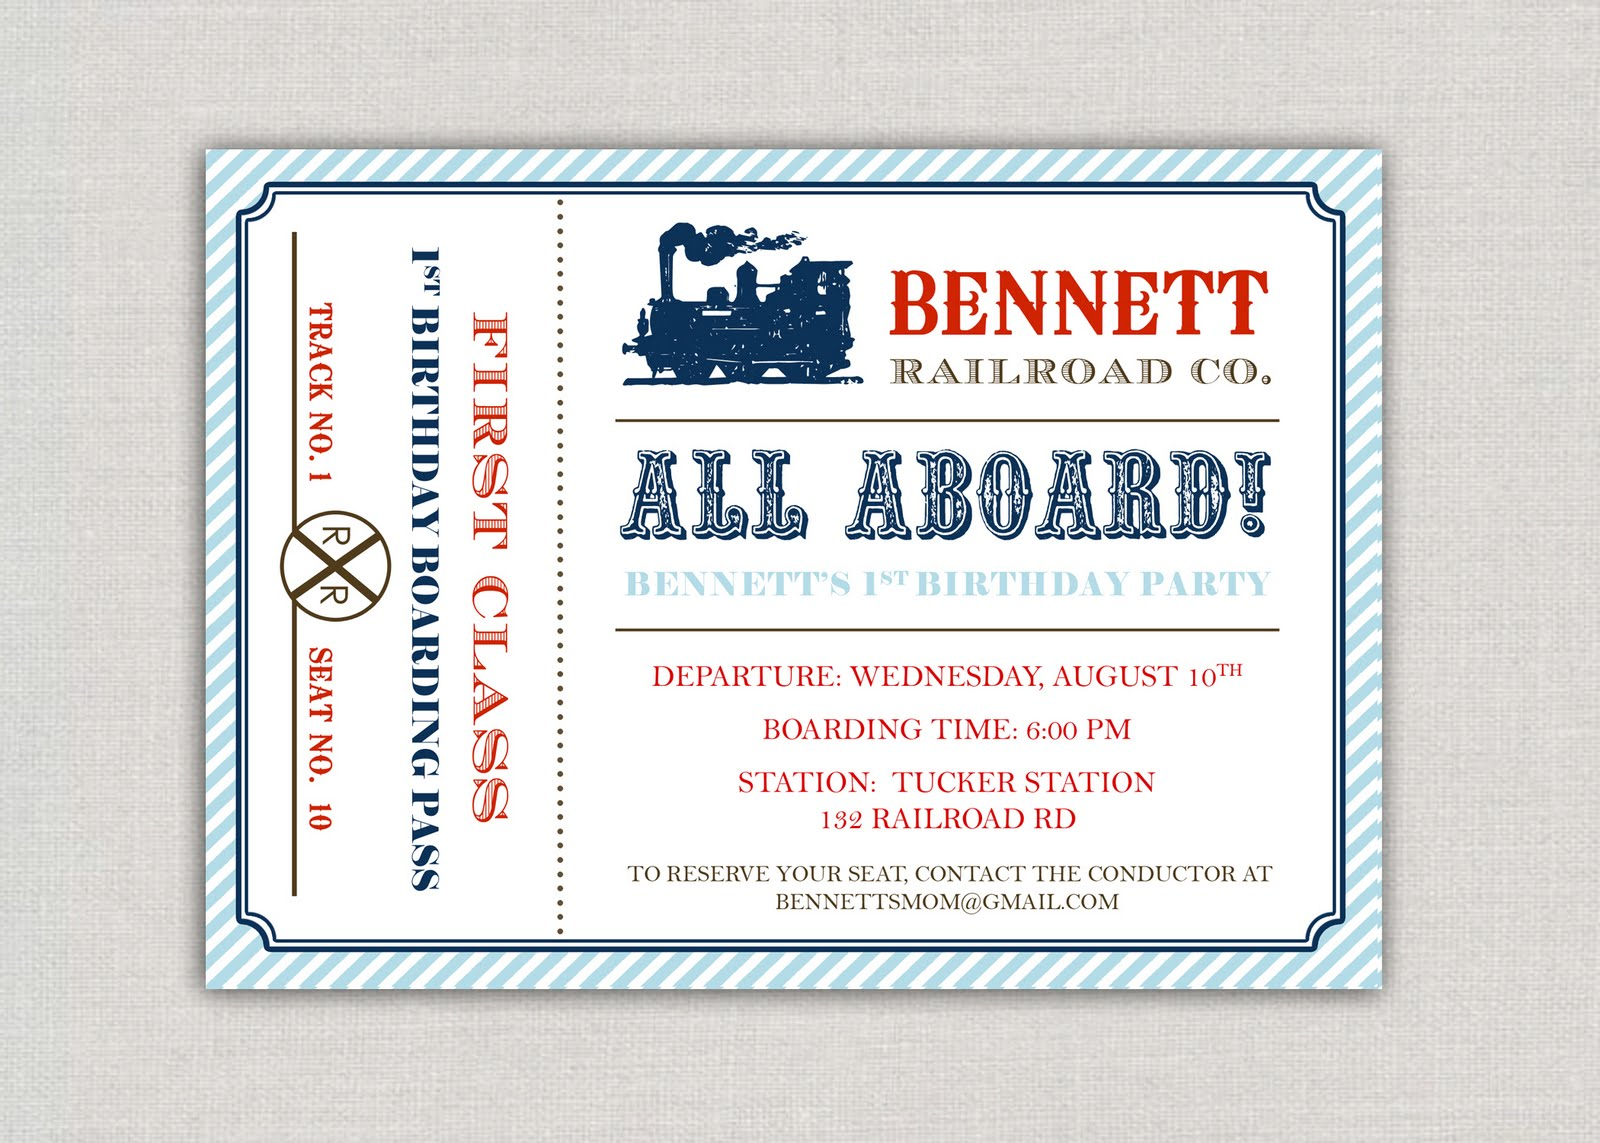 Train Ticket Template Free show ticket template free printable – Show Ticket Template